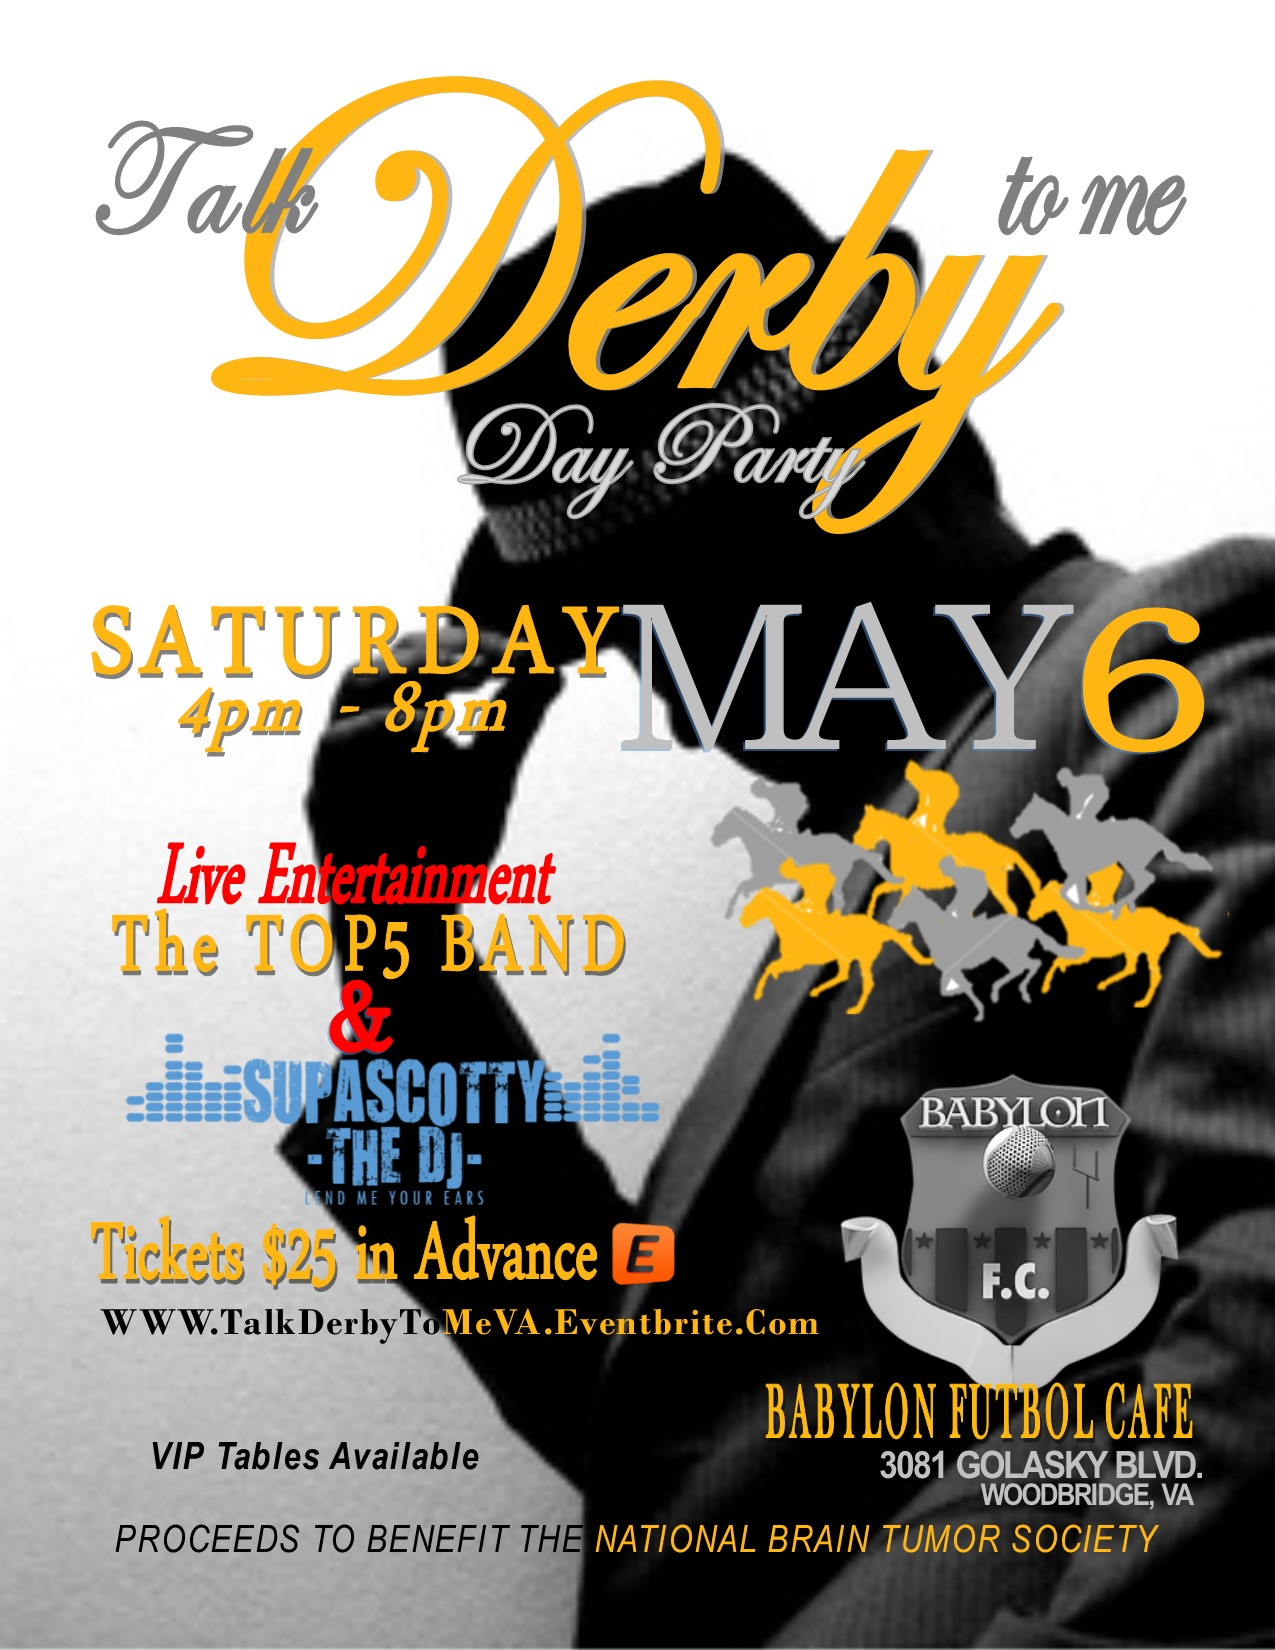 VA Talk Derby to me Day party